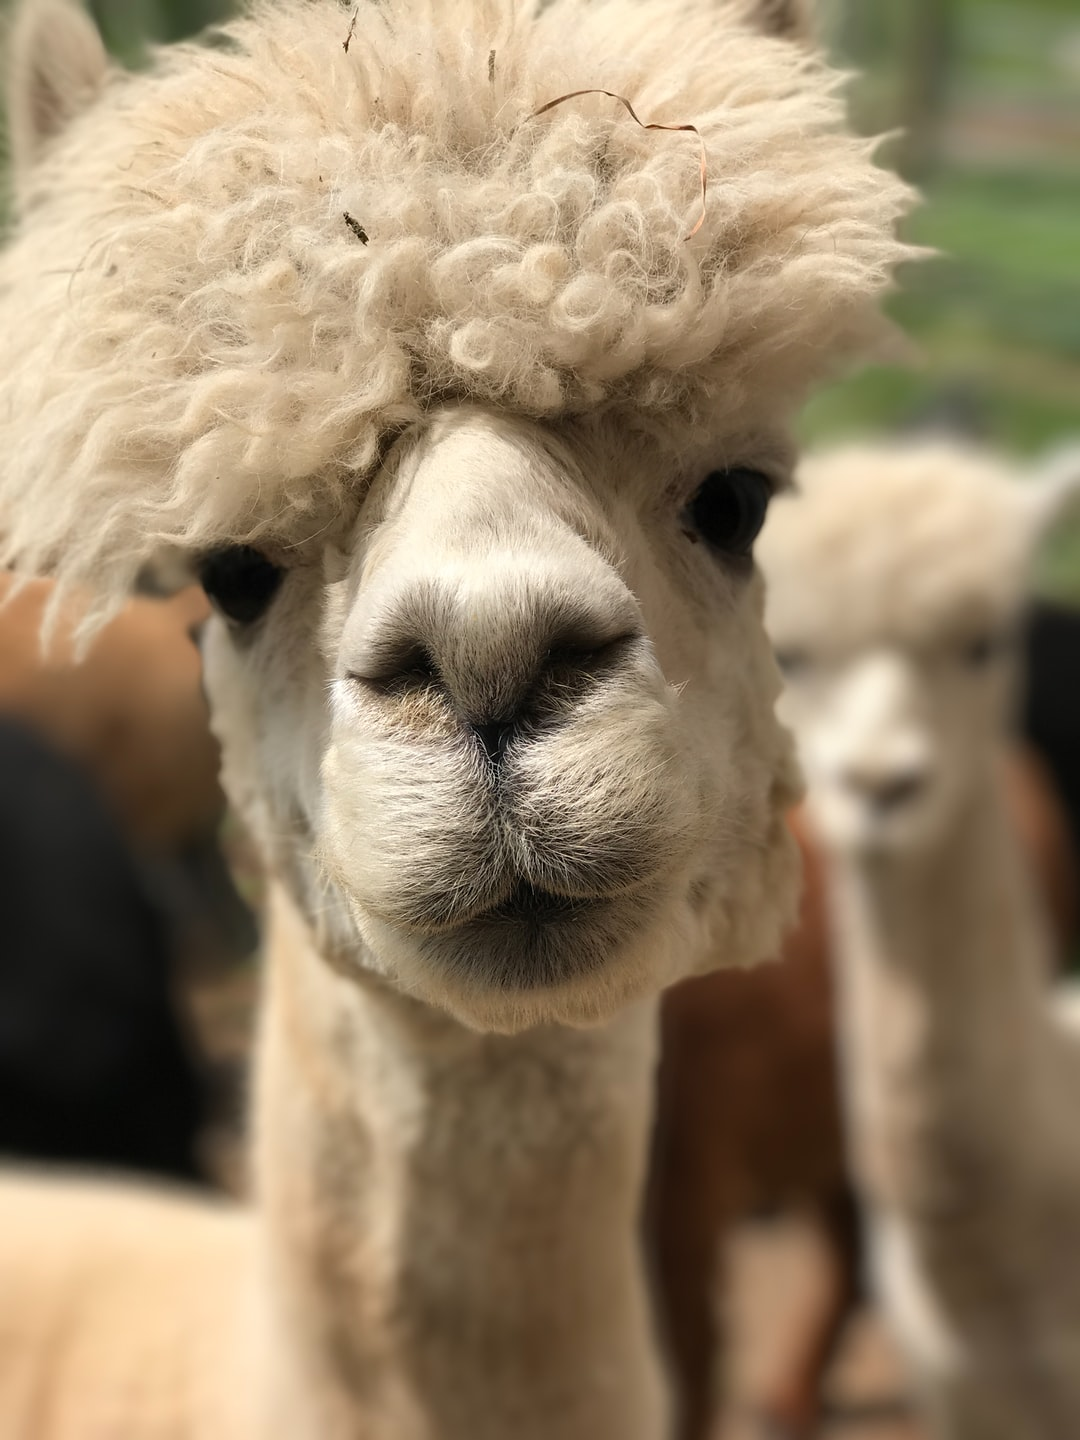 I met this alpaca at a farm in Walton, NY. She was kind enough to pose for a quick pic.